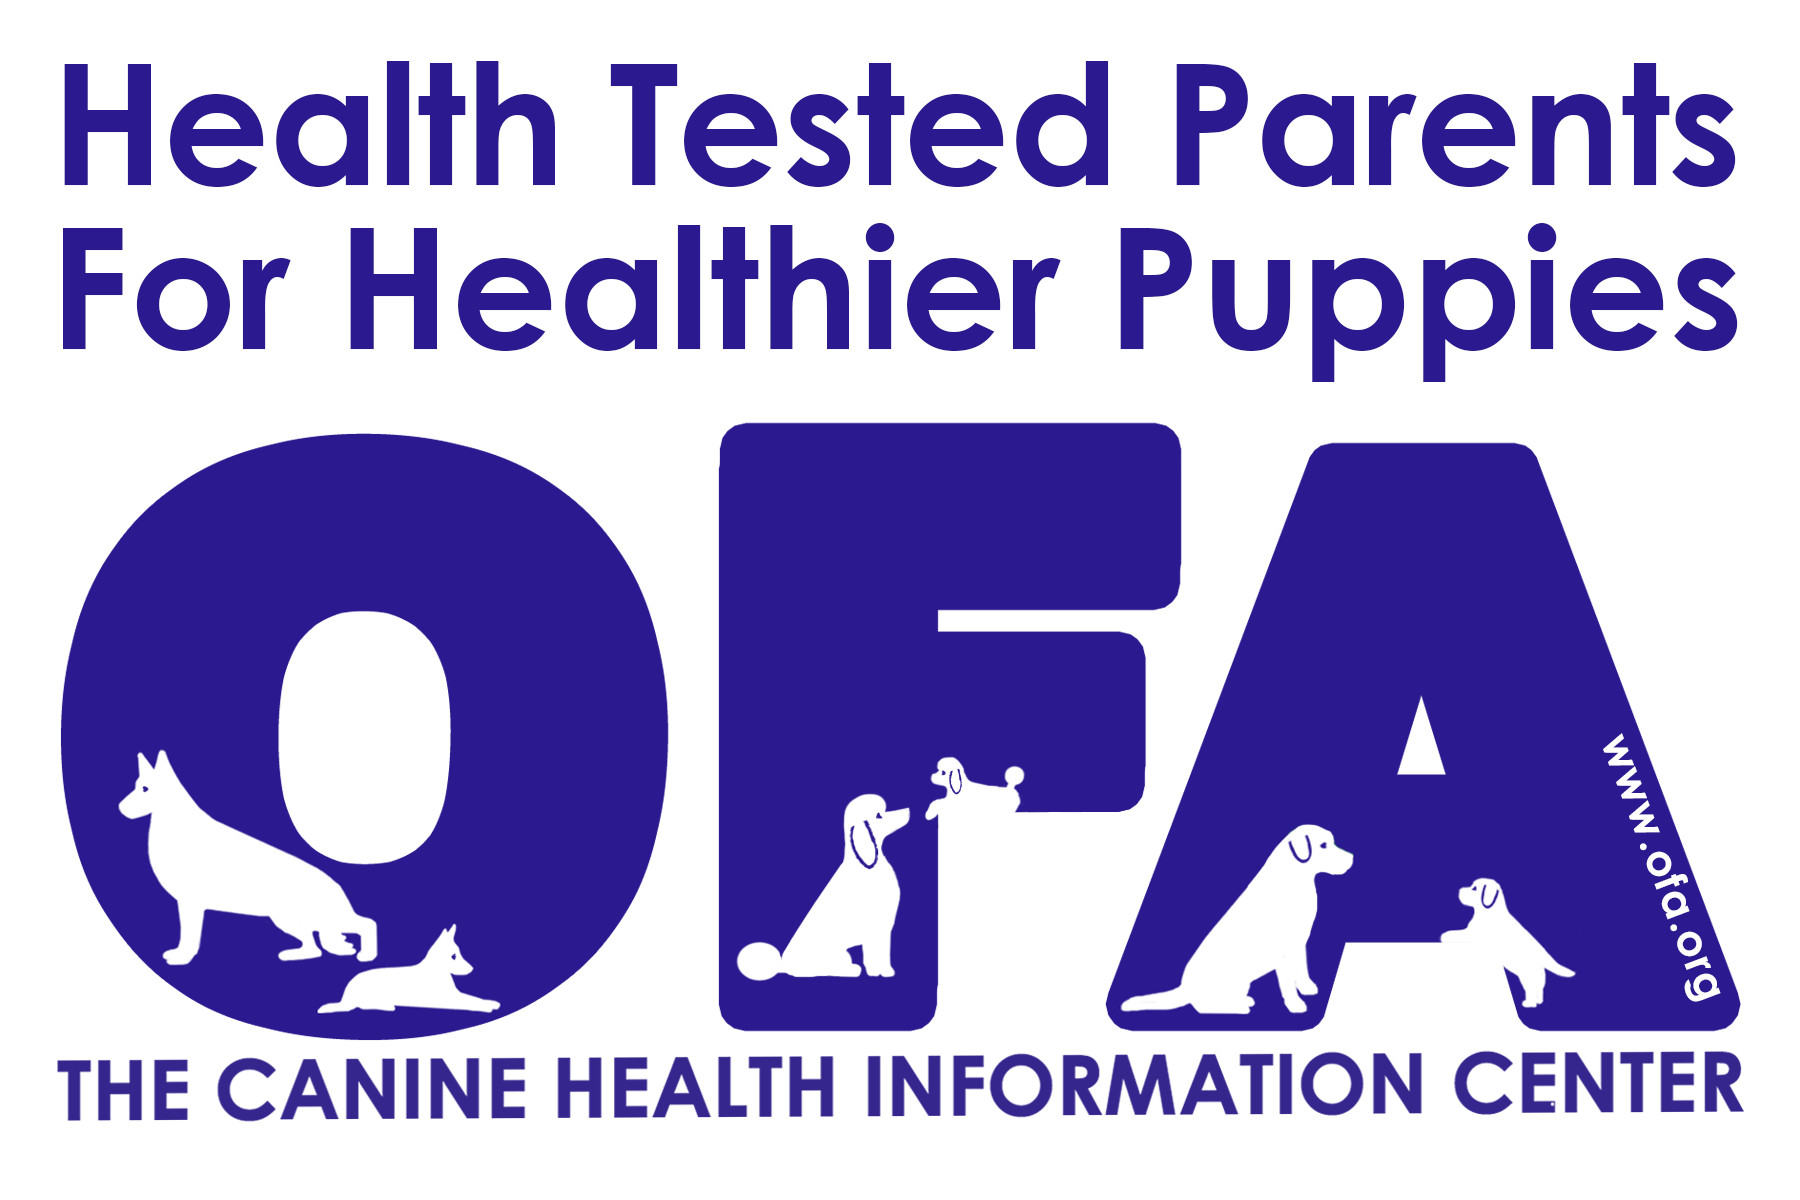 The Canine Health Information Center logo